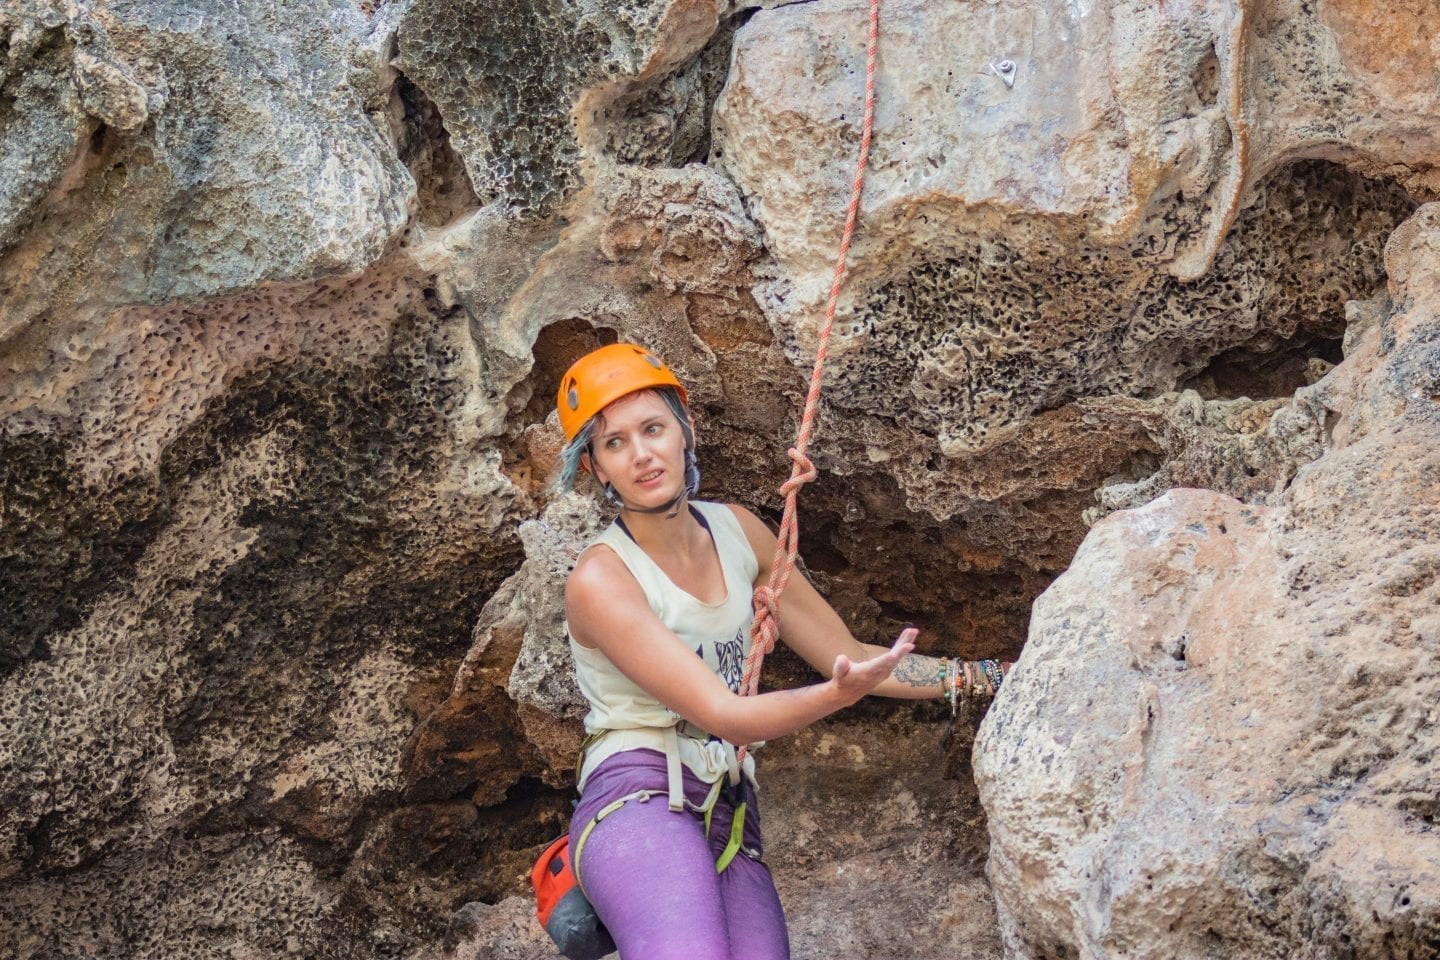 Rock Climbing In Railay, Thailand For The First-Time | Wanderlust Movement | #rockclimbing #thailand #krabi #southeastasia #adventure #extremesports